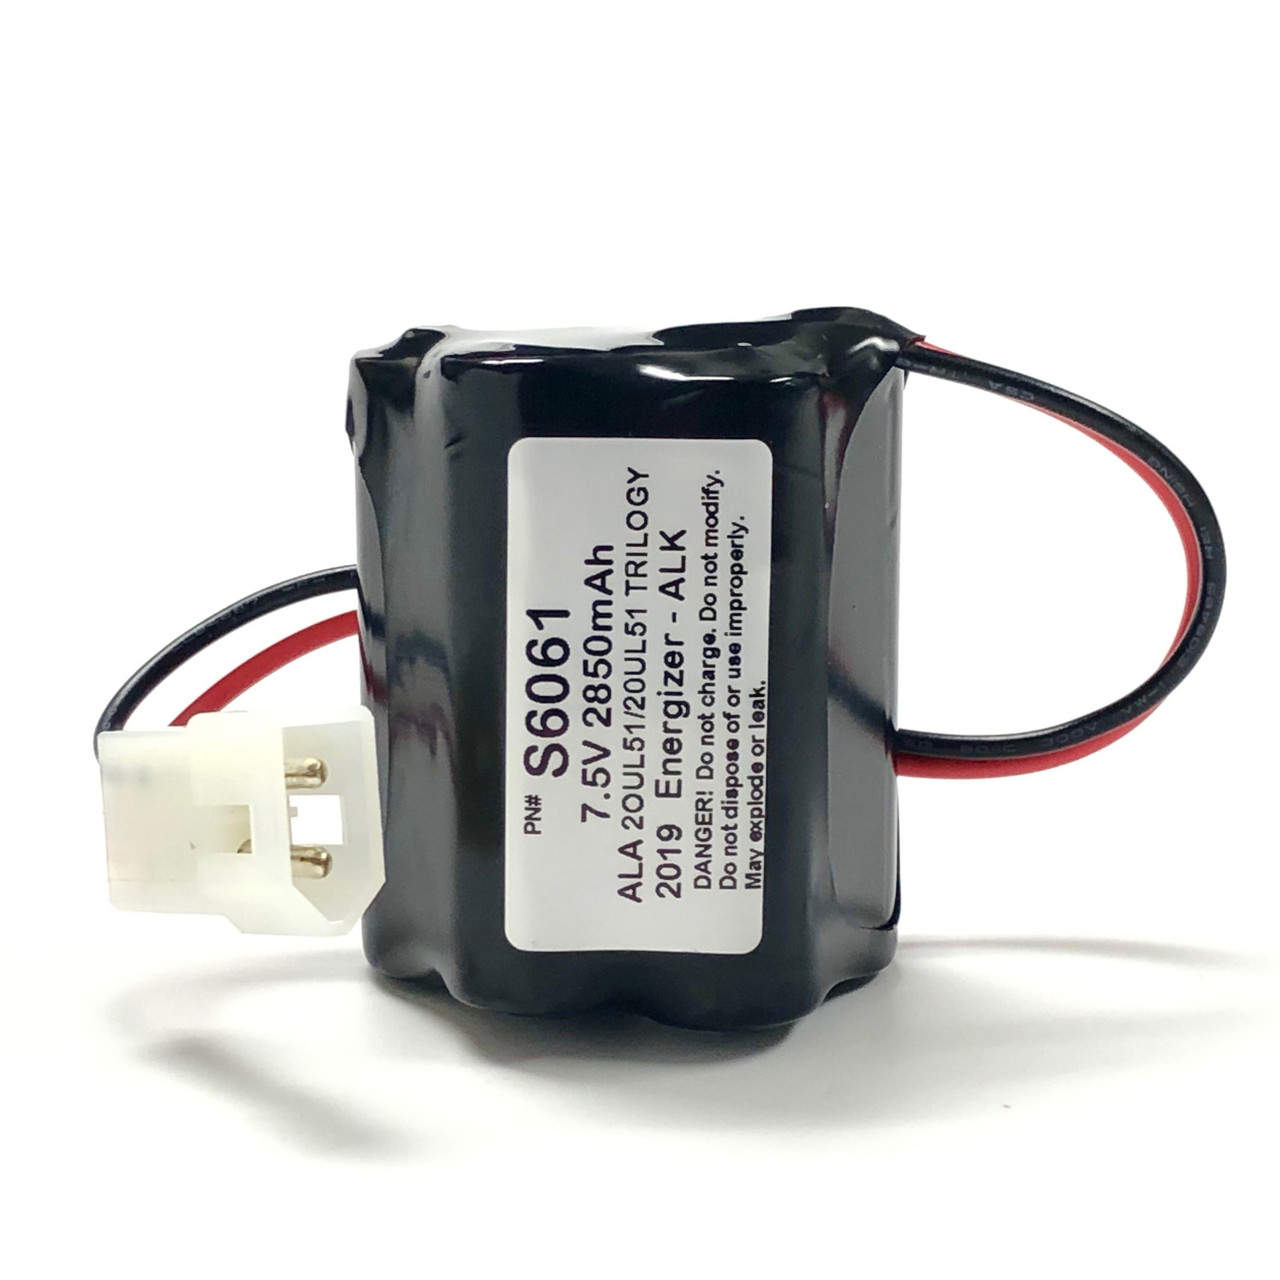 Alarm Lock S6061 Trilogy Replacement Battery Pack For DL2700 (No Case)